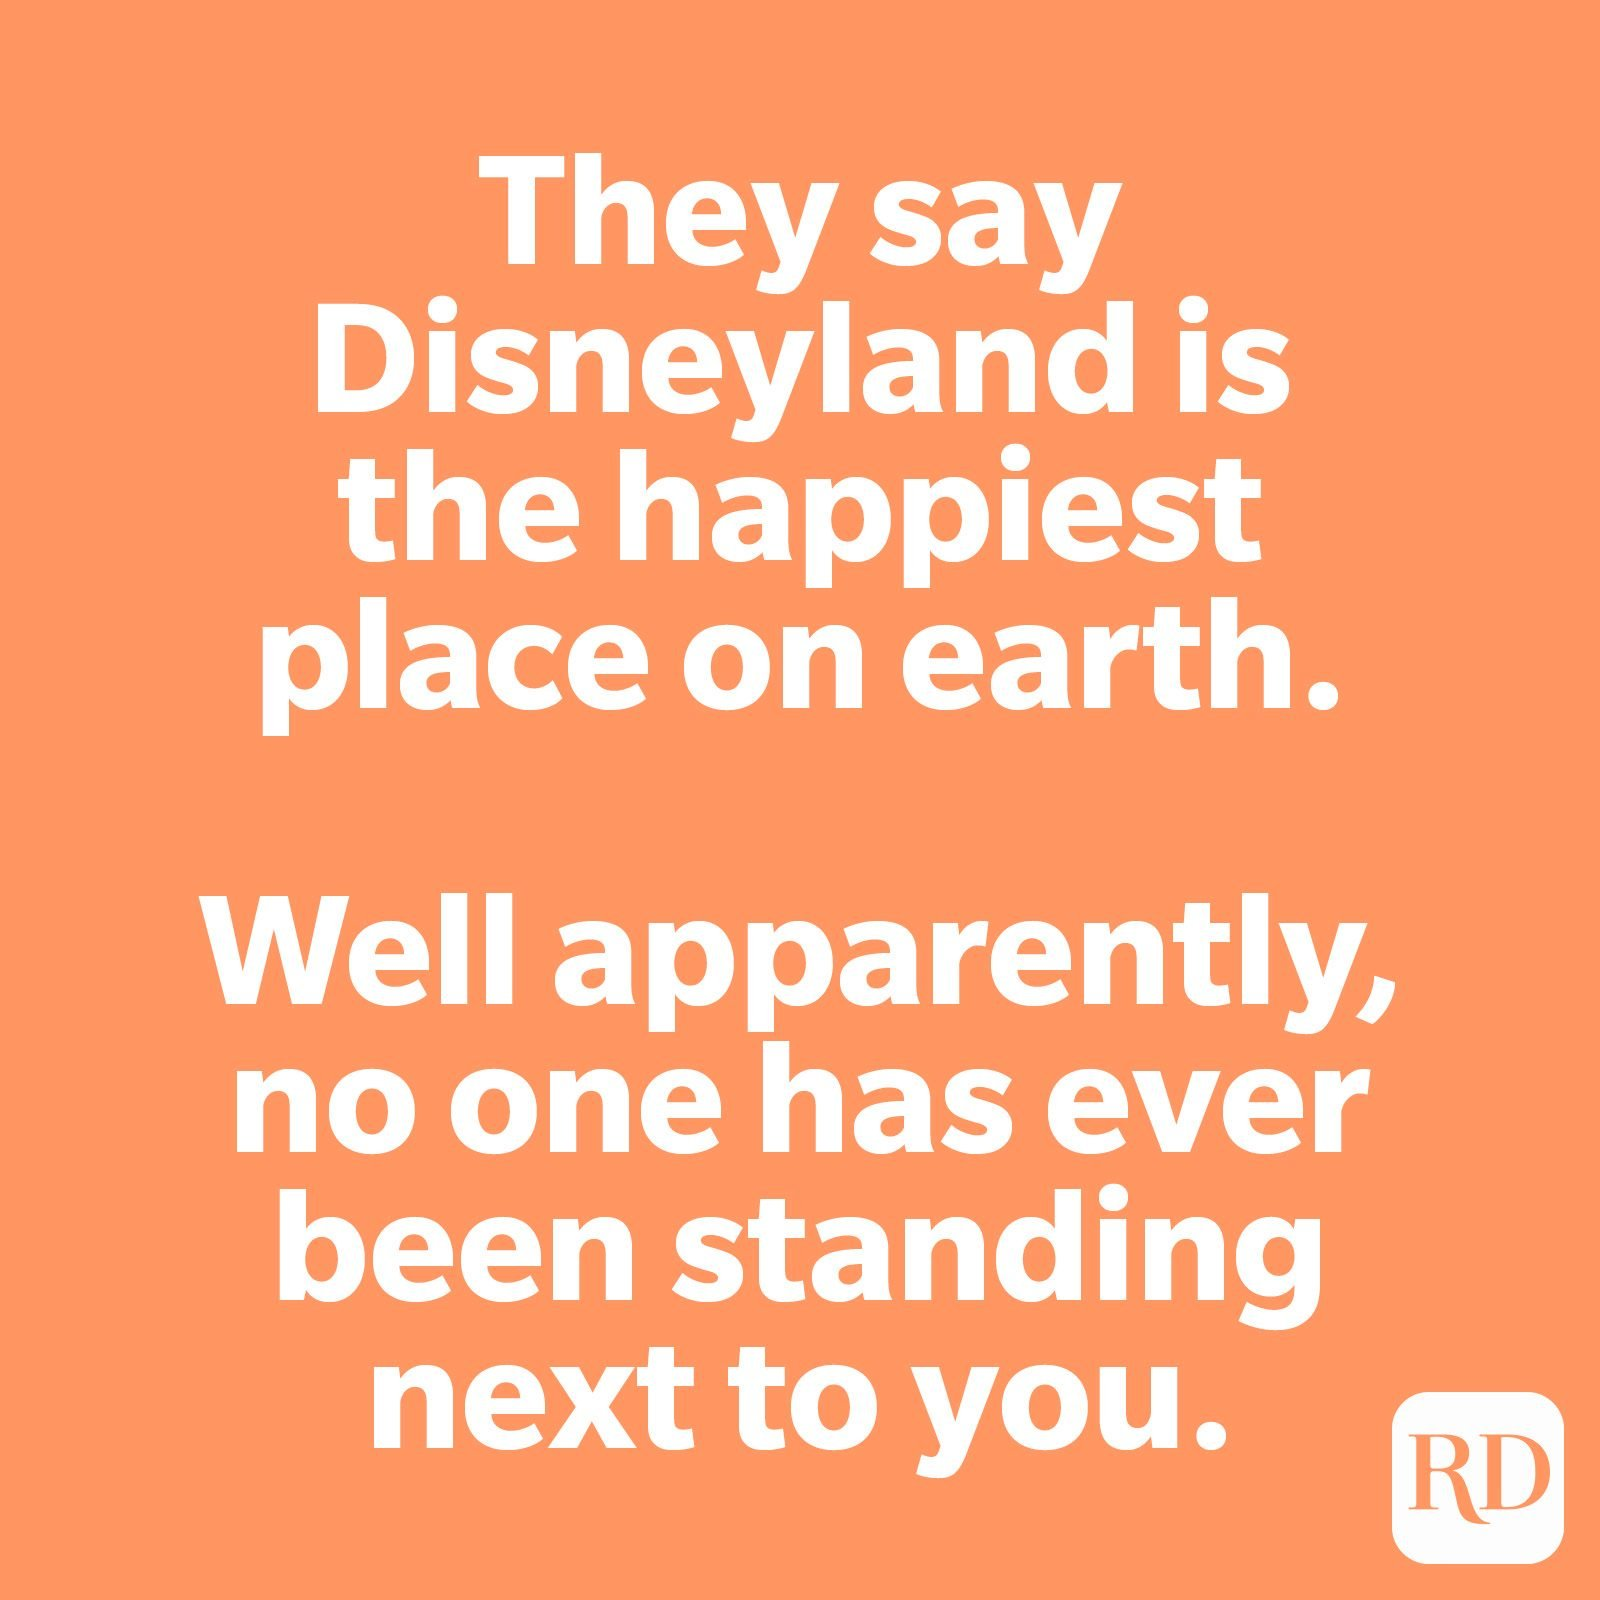 They say Disneyland is the happiest place on earth. Well apparently, no one has ever been standing next to you.